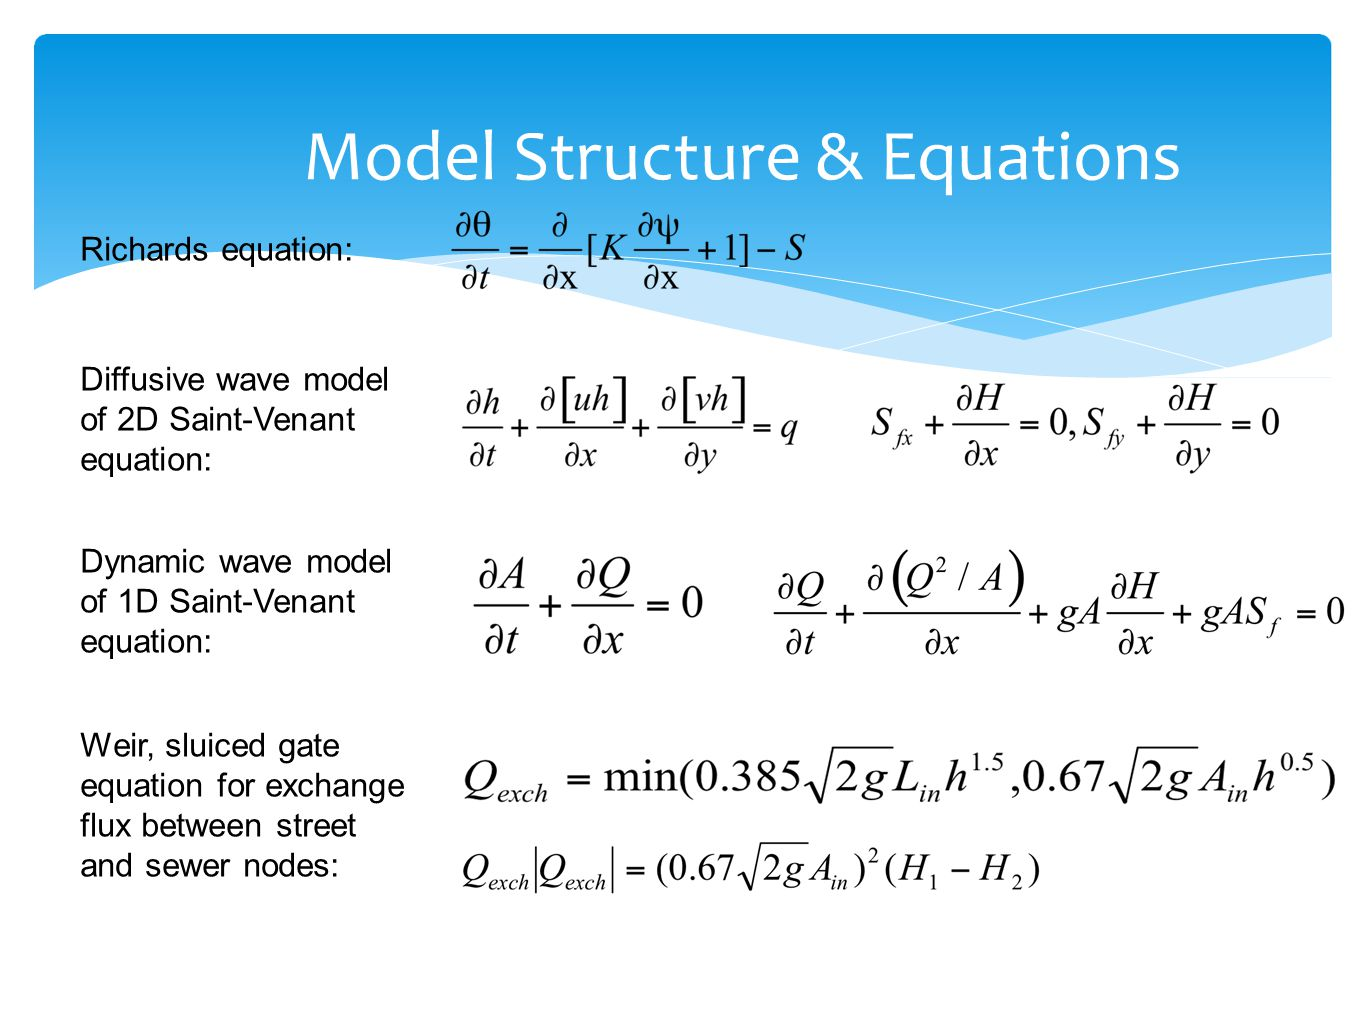 Richards equation: Diffusive wave model of 2D Saint-Venant equation: Dynamic wave model of 1D Saint-Venant equation: Weir, sluiced gate equation for exchange flux between street and sewer nodes: Model Structure & Equations